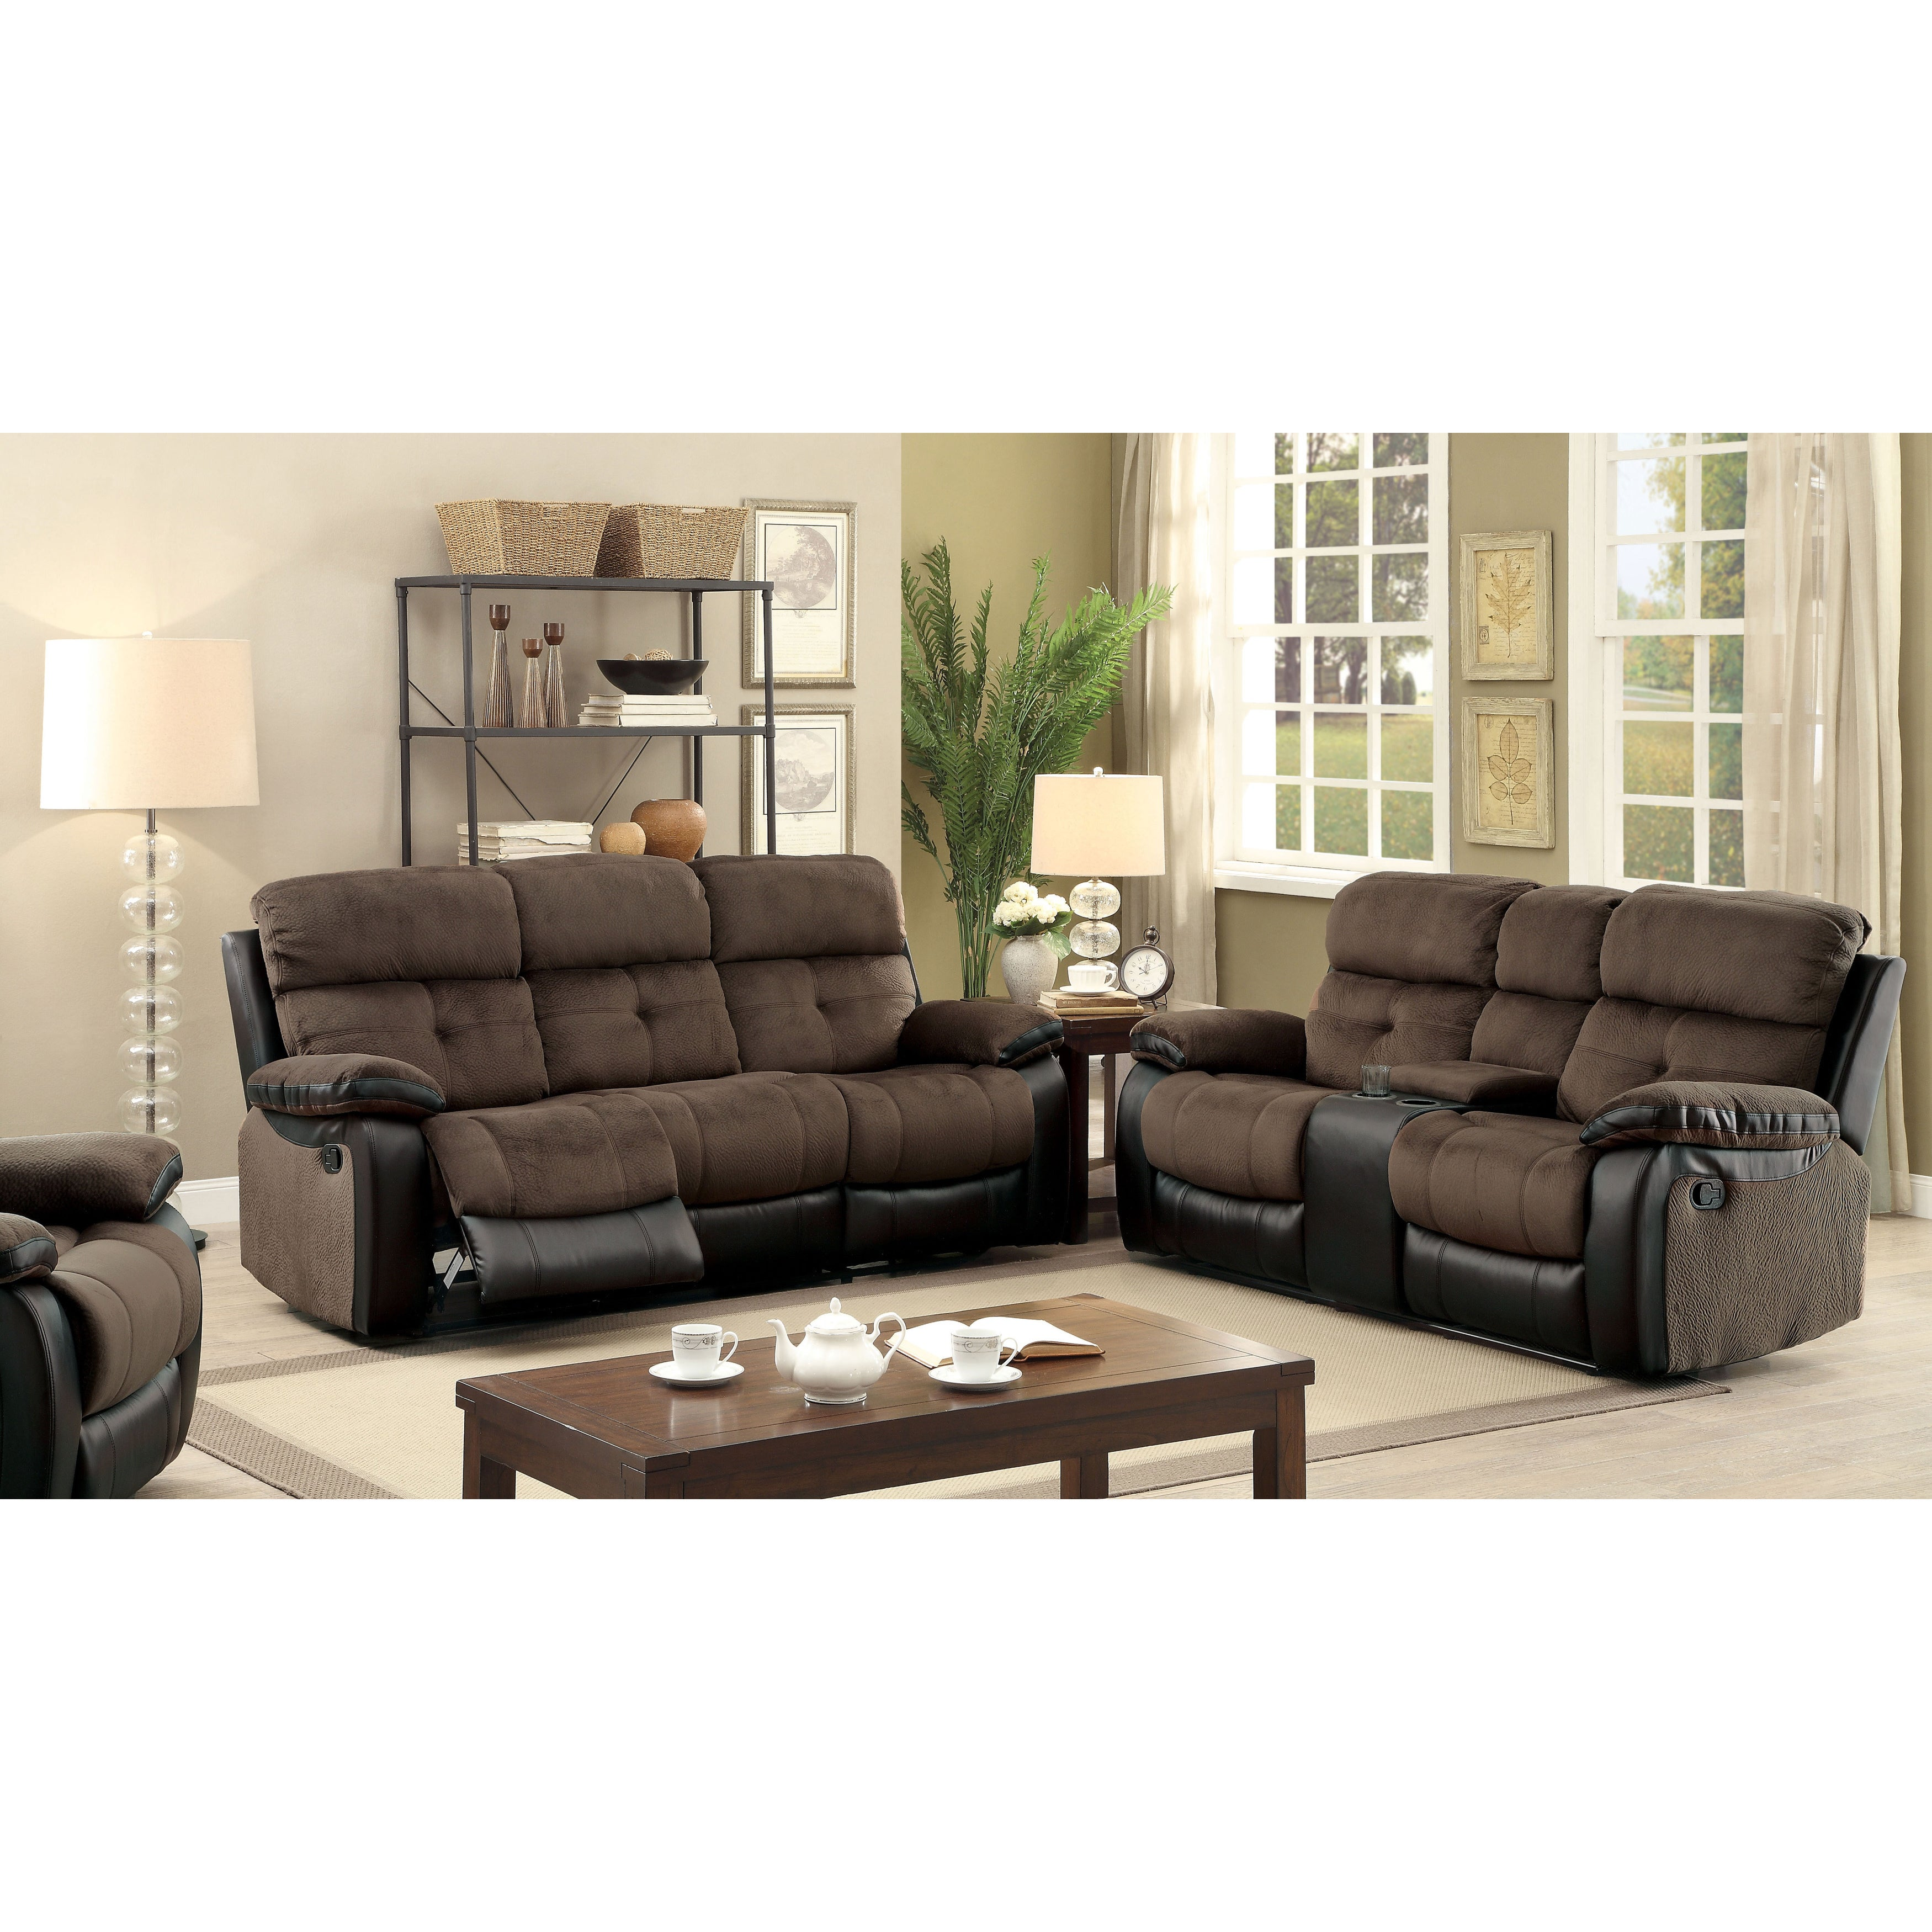 Fawnie Transitional Brown 2 Piece Reclining Sofa Set By Foa